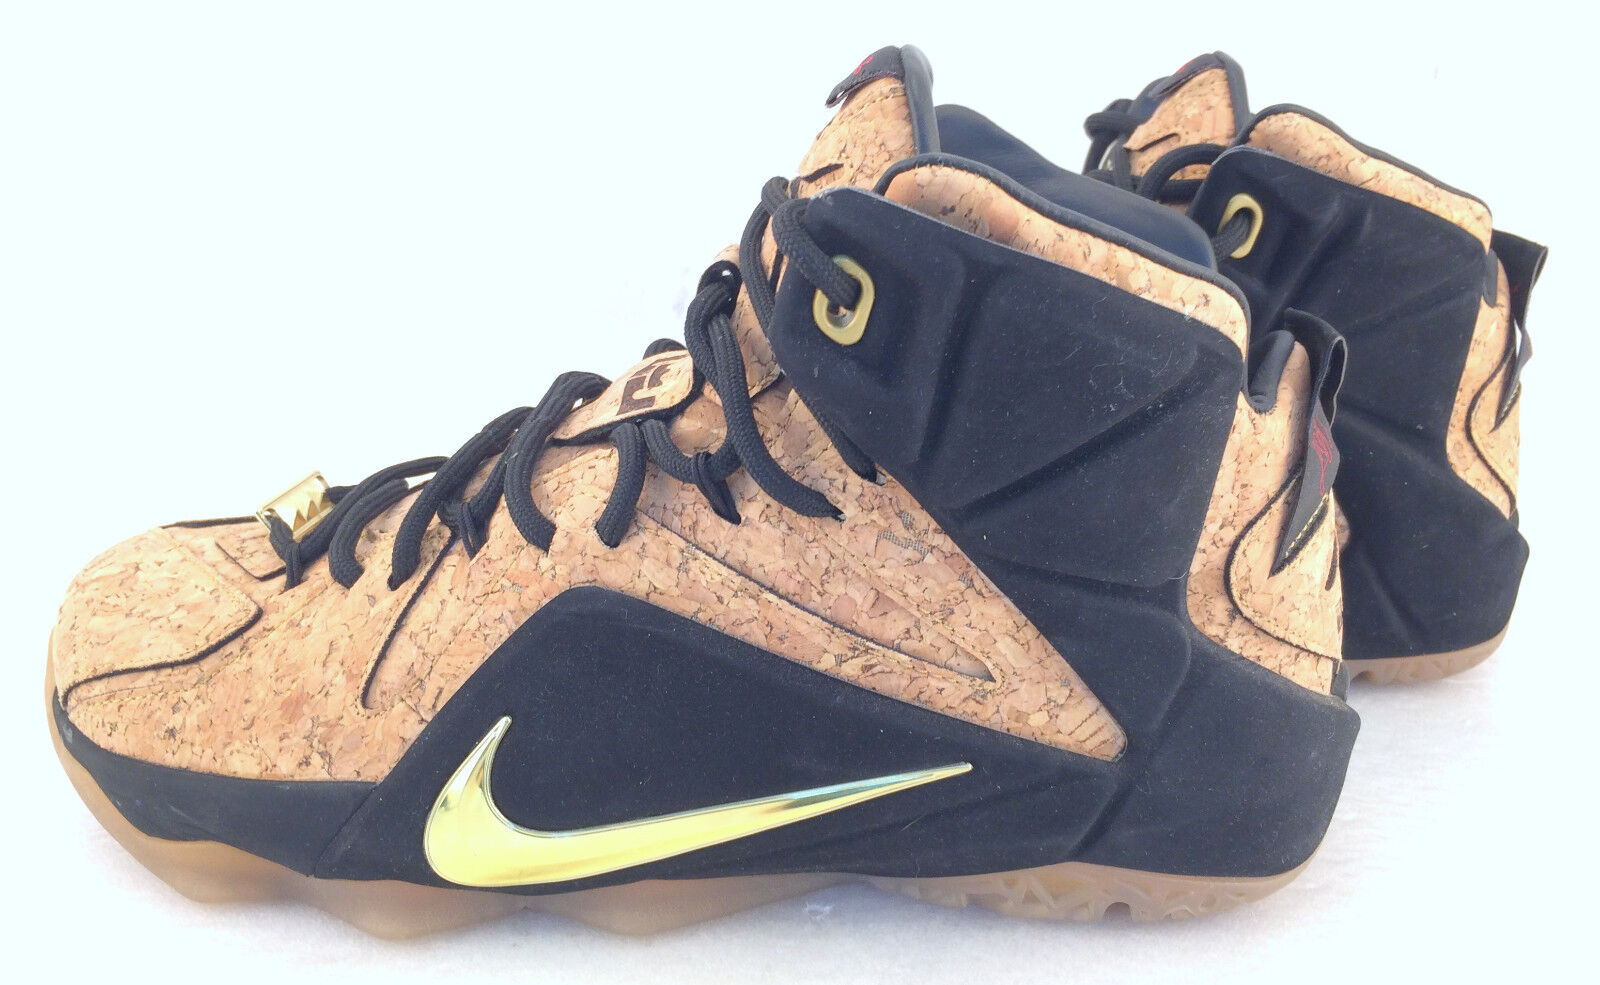 Nike Lebron XII EXT Cork Natural Black Mettalic Gold 768829 100 Size 8.5